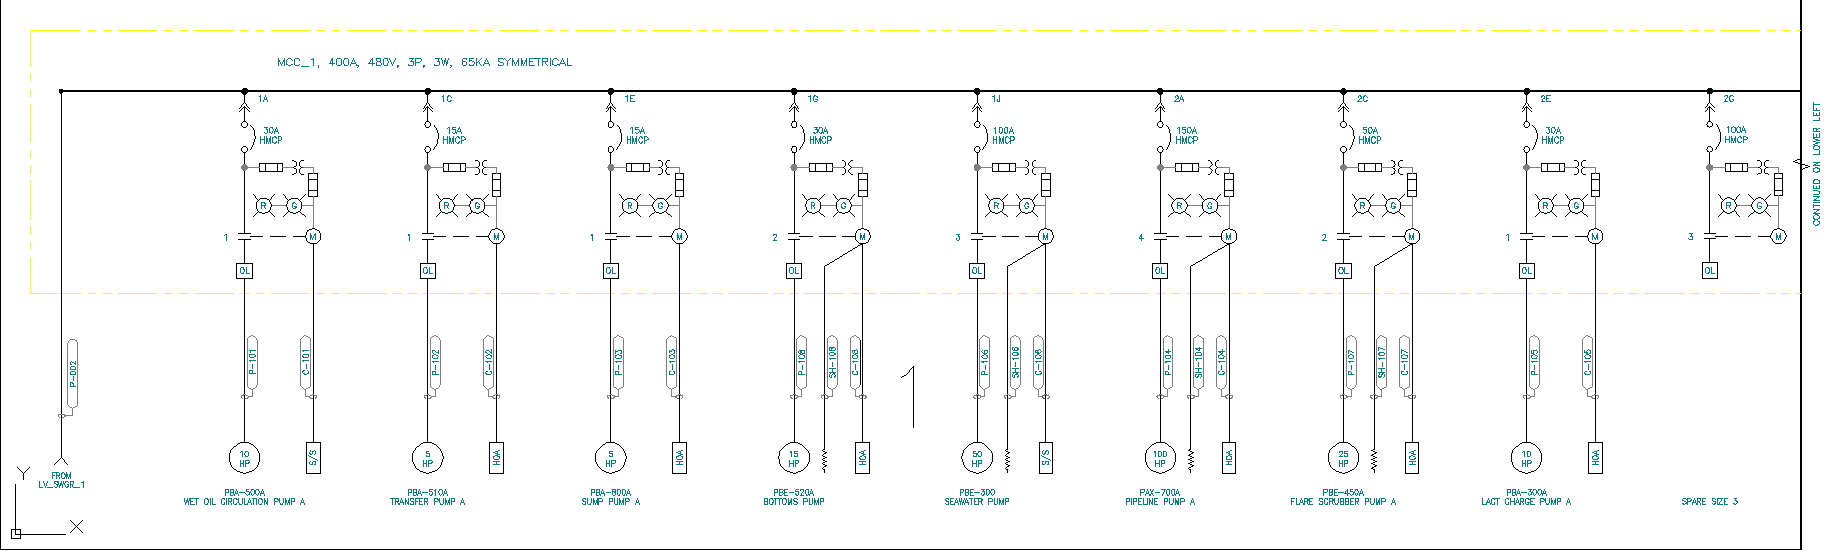 An Electrical Design Software For Automatic One Line Diagrams - Electrical Line Diagram